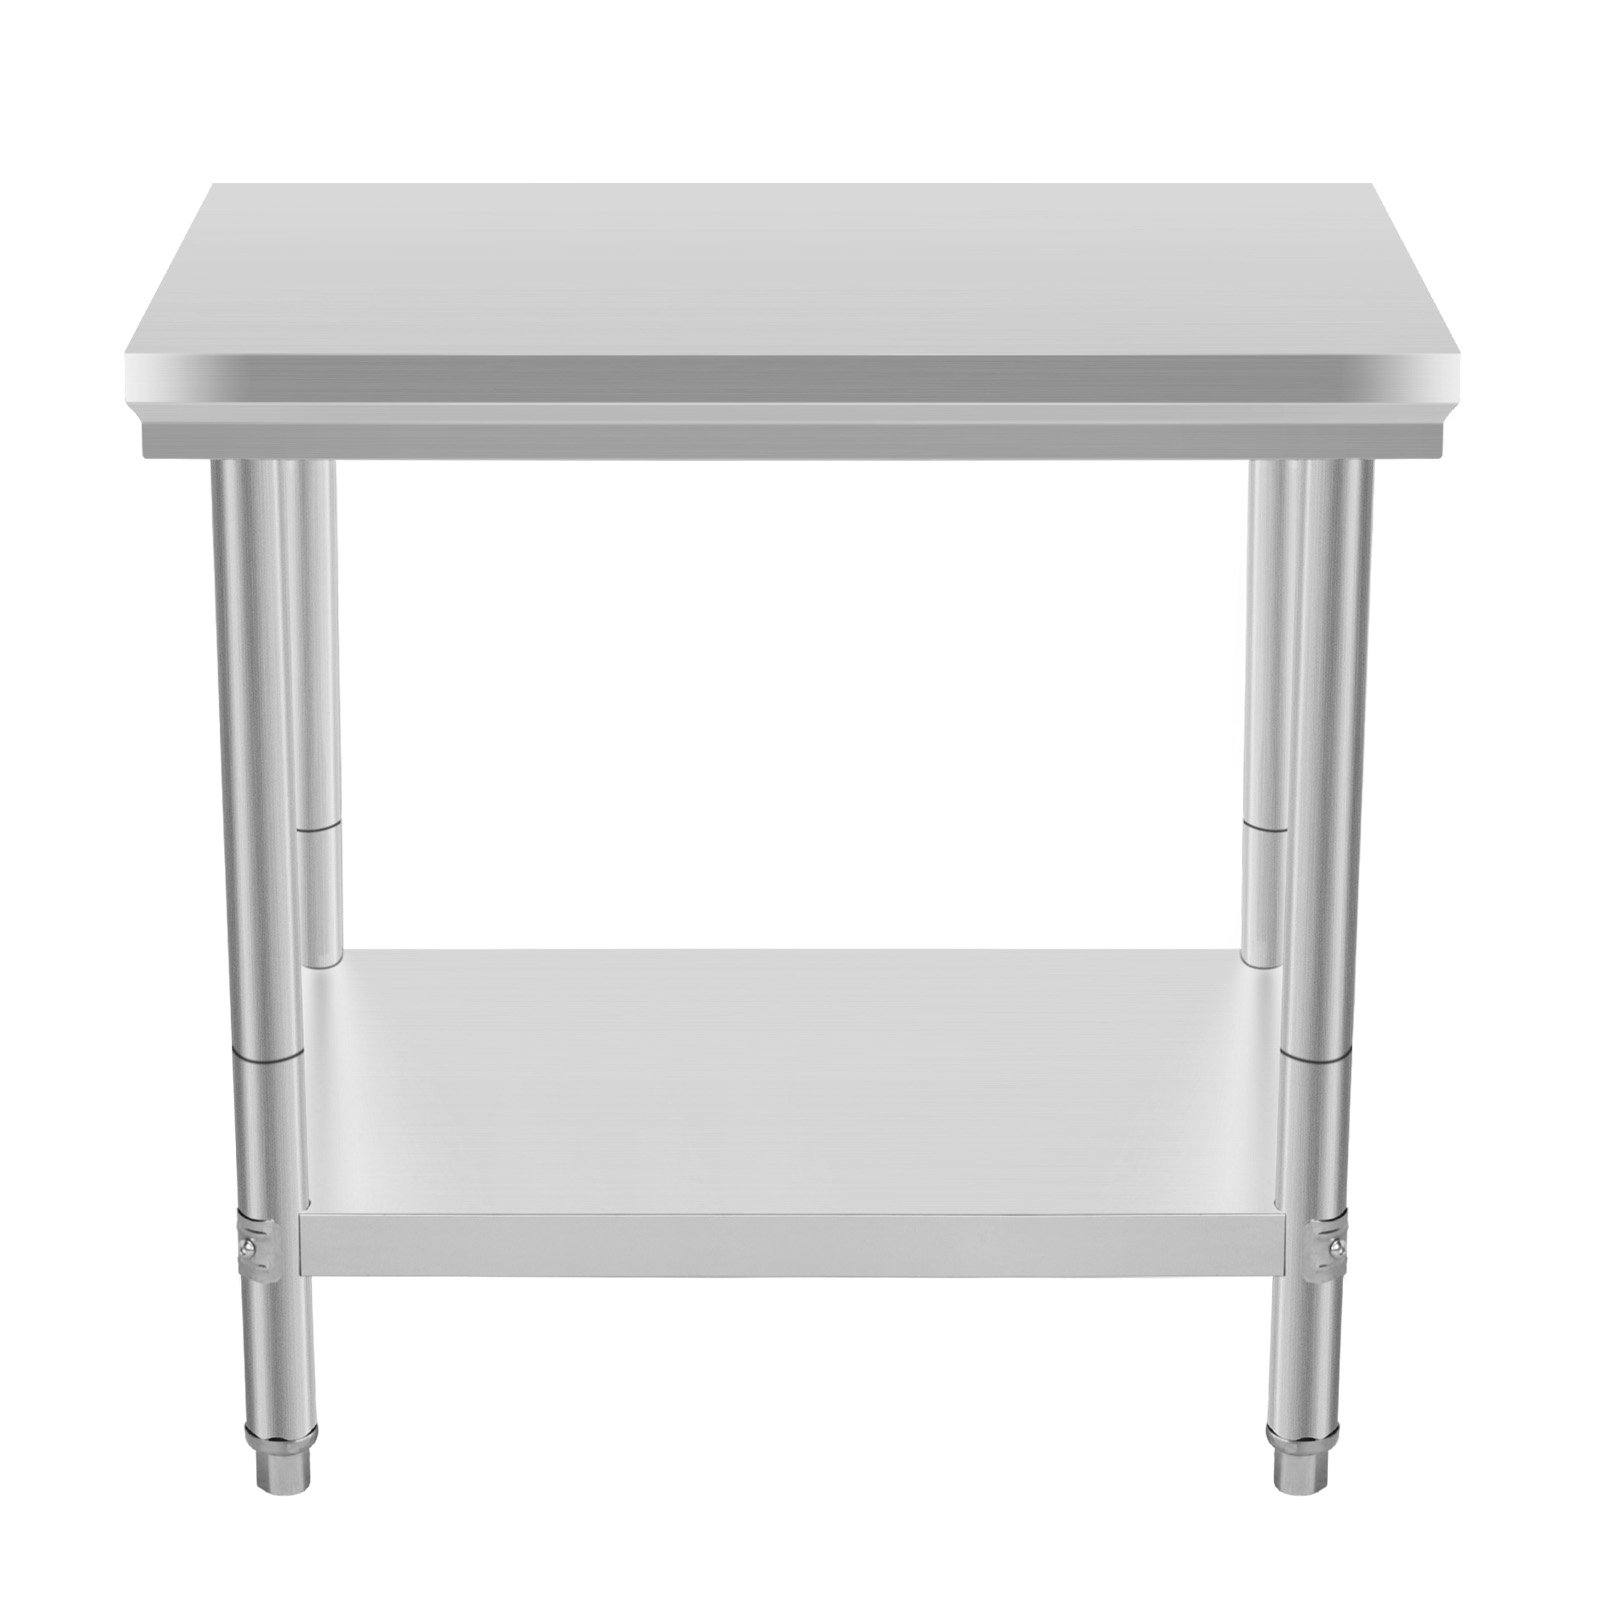 Happybuy NSF Stainless Steel Work Table for Commercial Kitchen Prep Work Table with Lower Shelf Work Table Silvery 36 x 24 inches